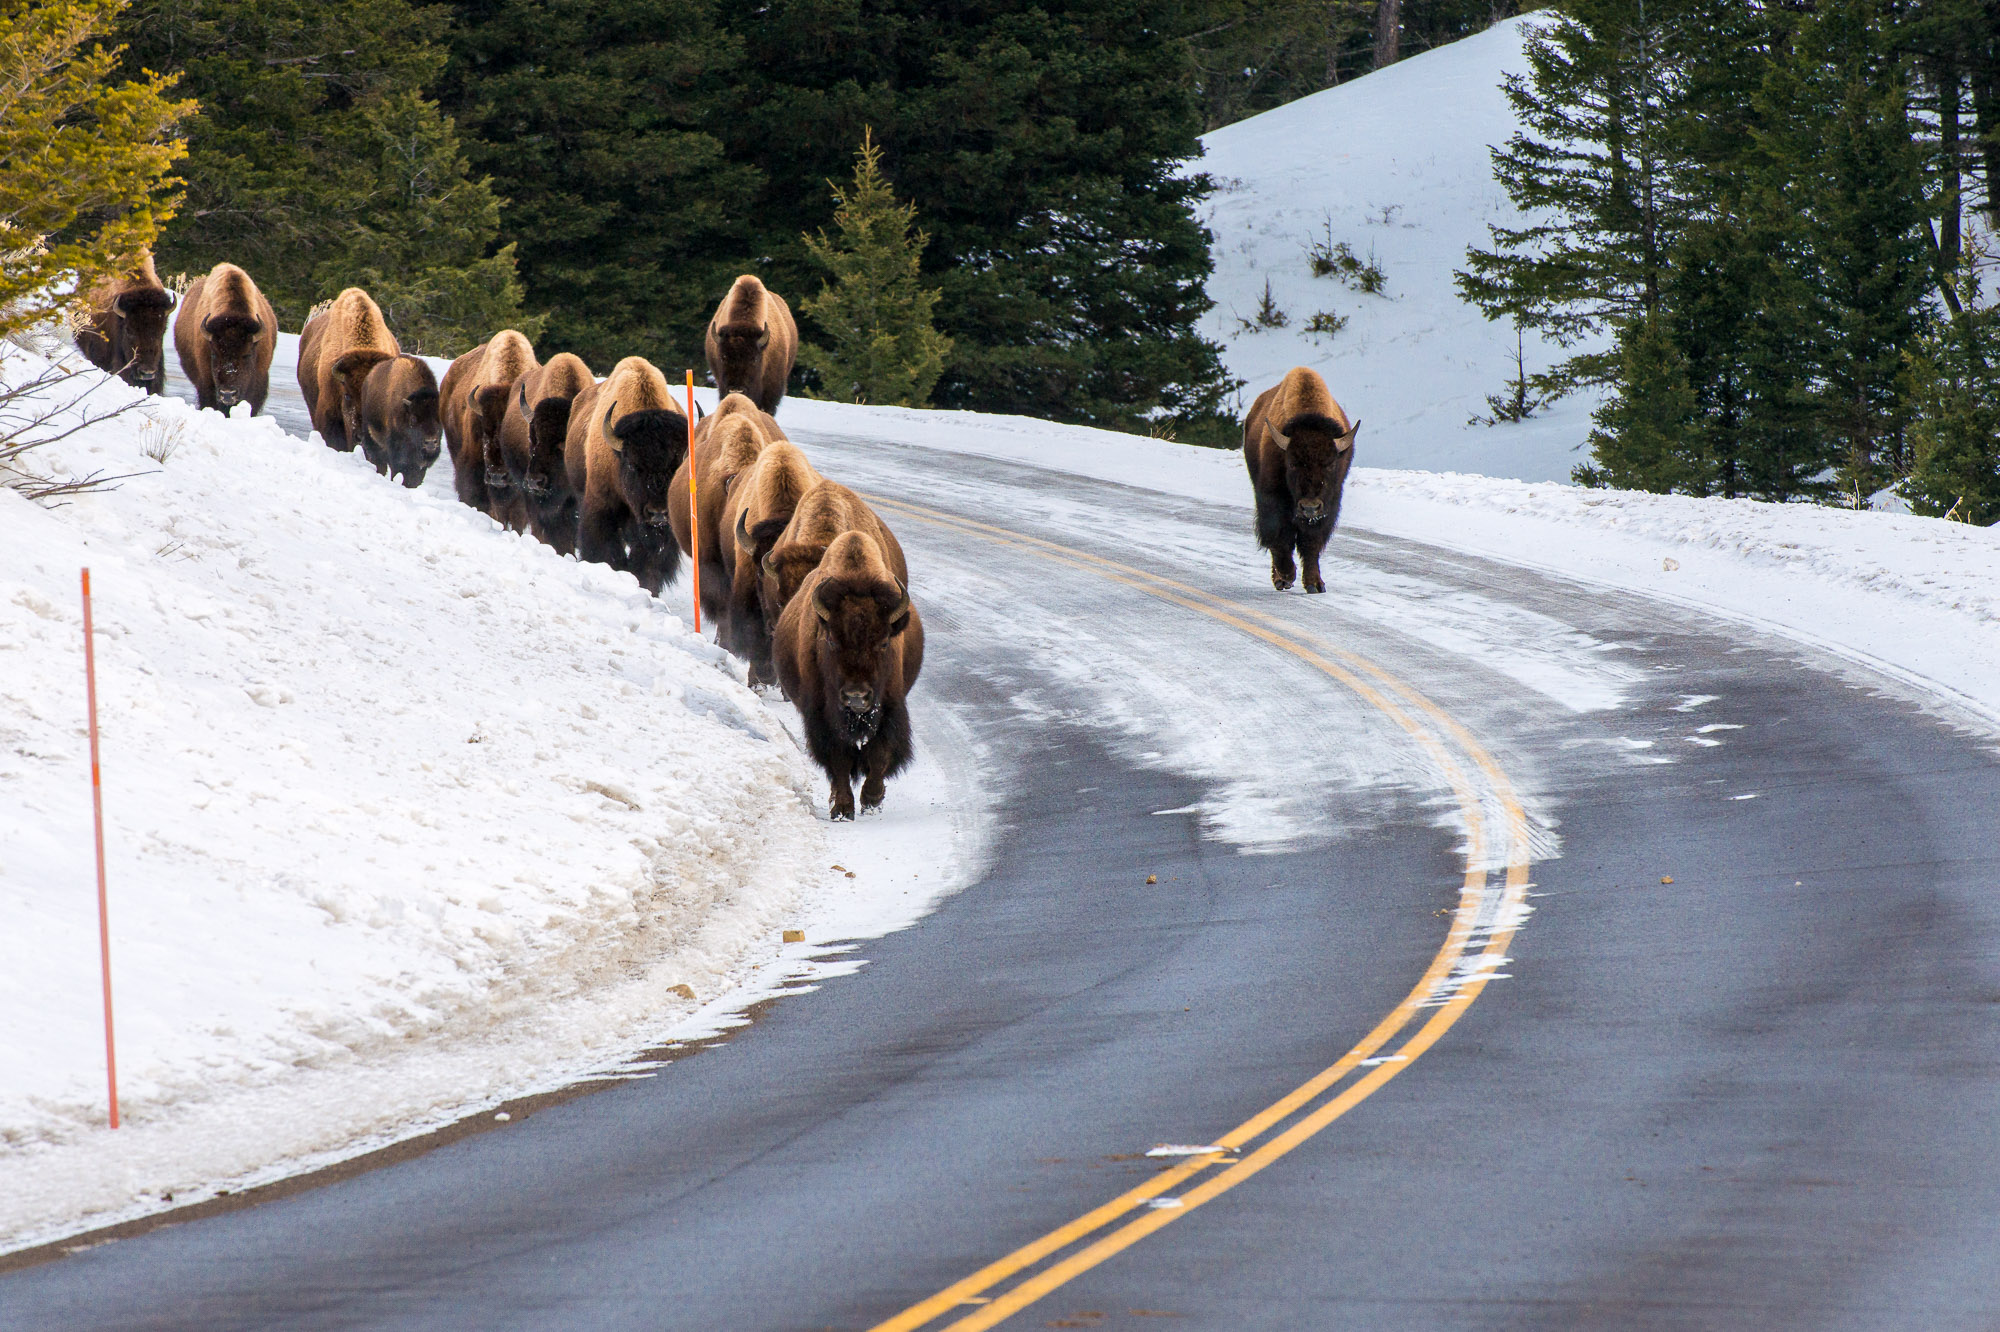 Herd of bison on road - Yellowstone National Park, Wyoming